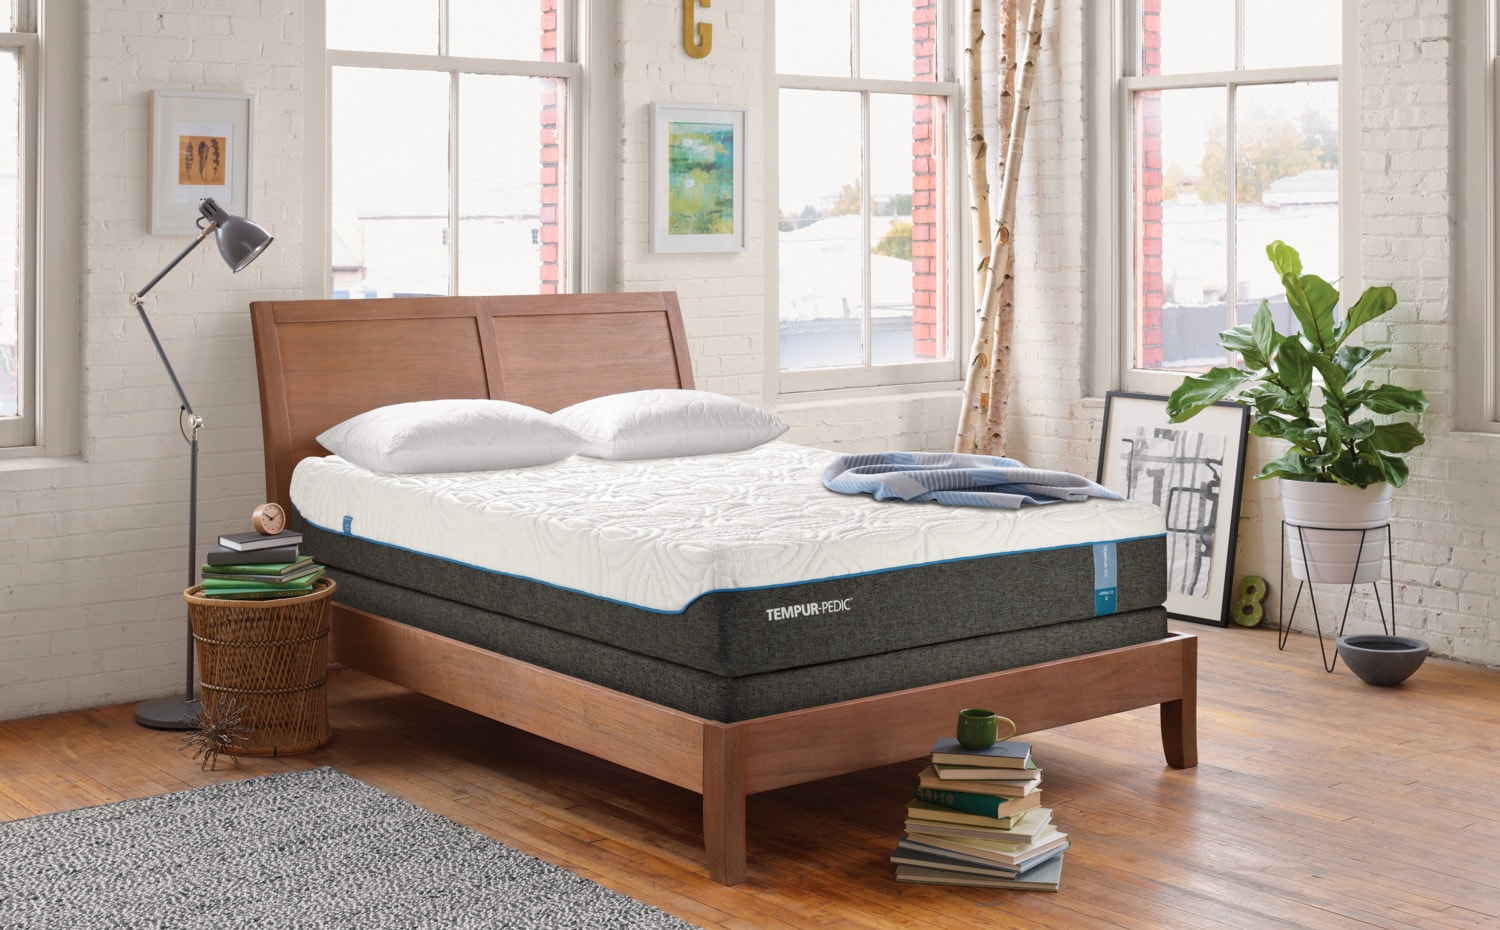 The Tempur-Pedic Appeal 2.0 Cushion Firm Collection